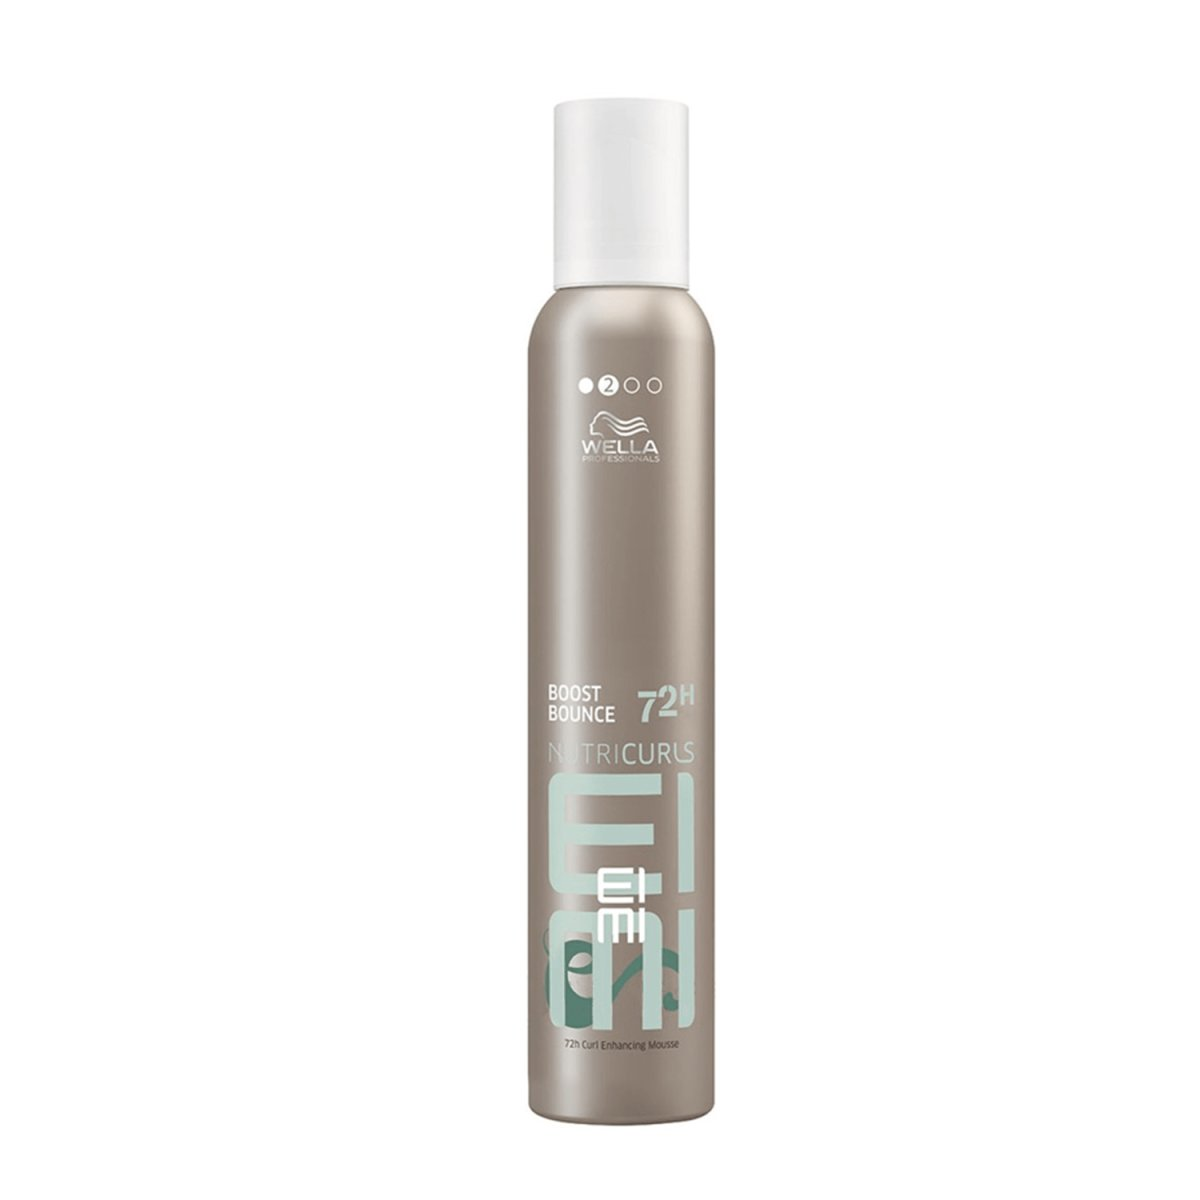 Wella Eimi Nutricurls Boost Bounce 72h Locken-Mousse 300 ml